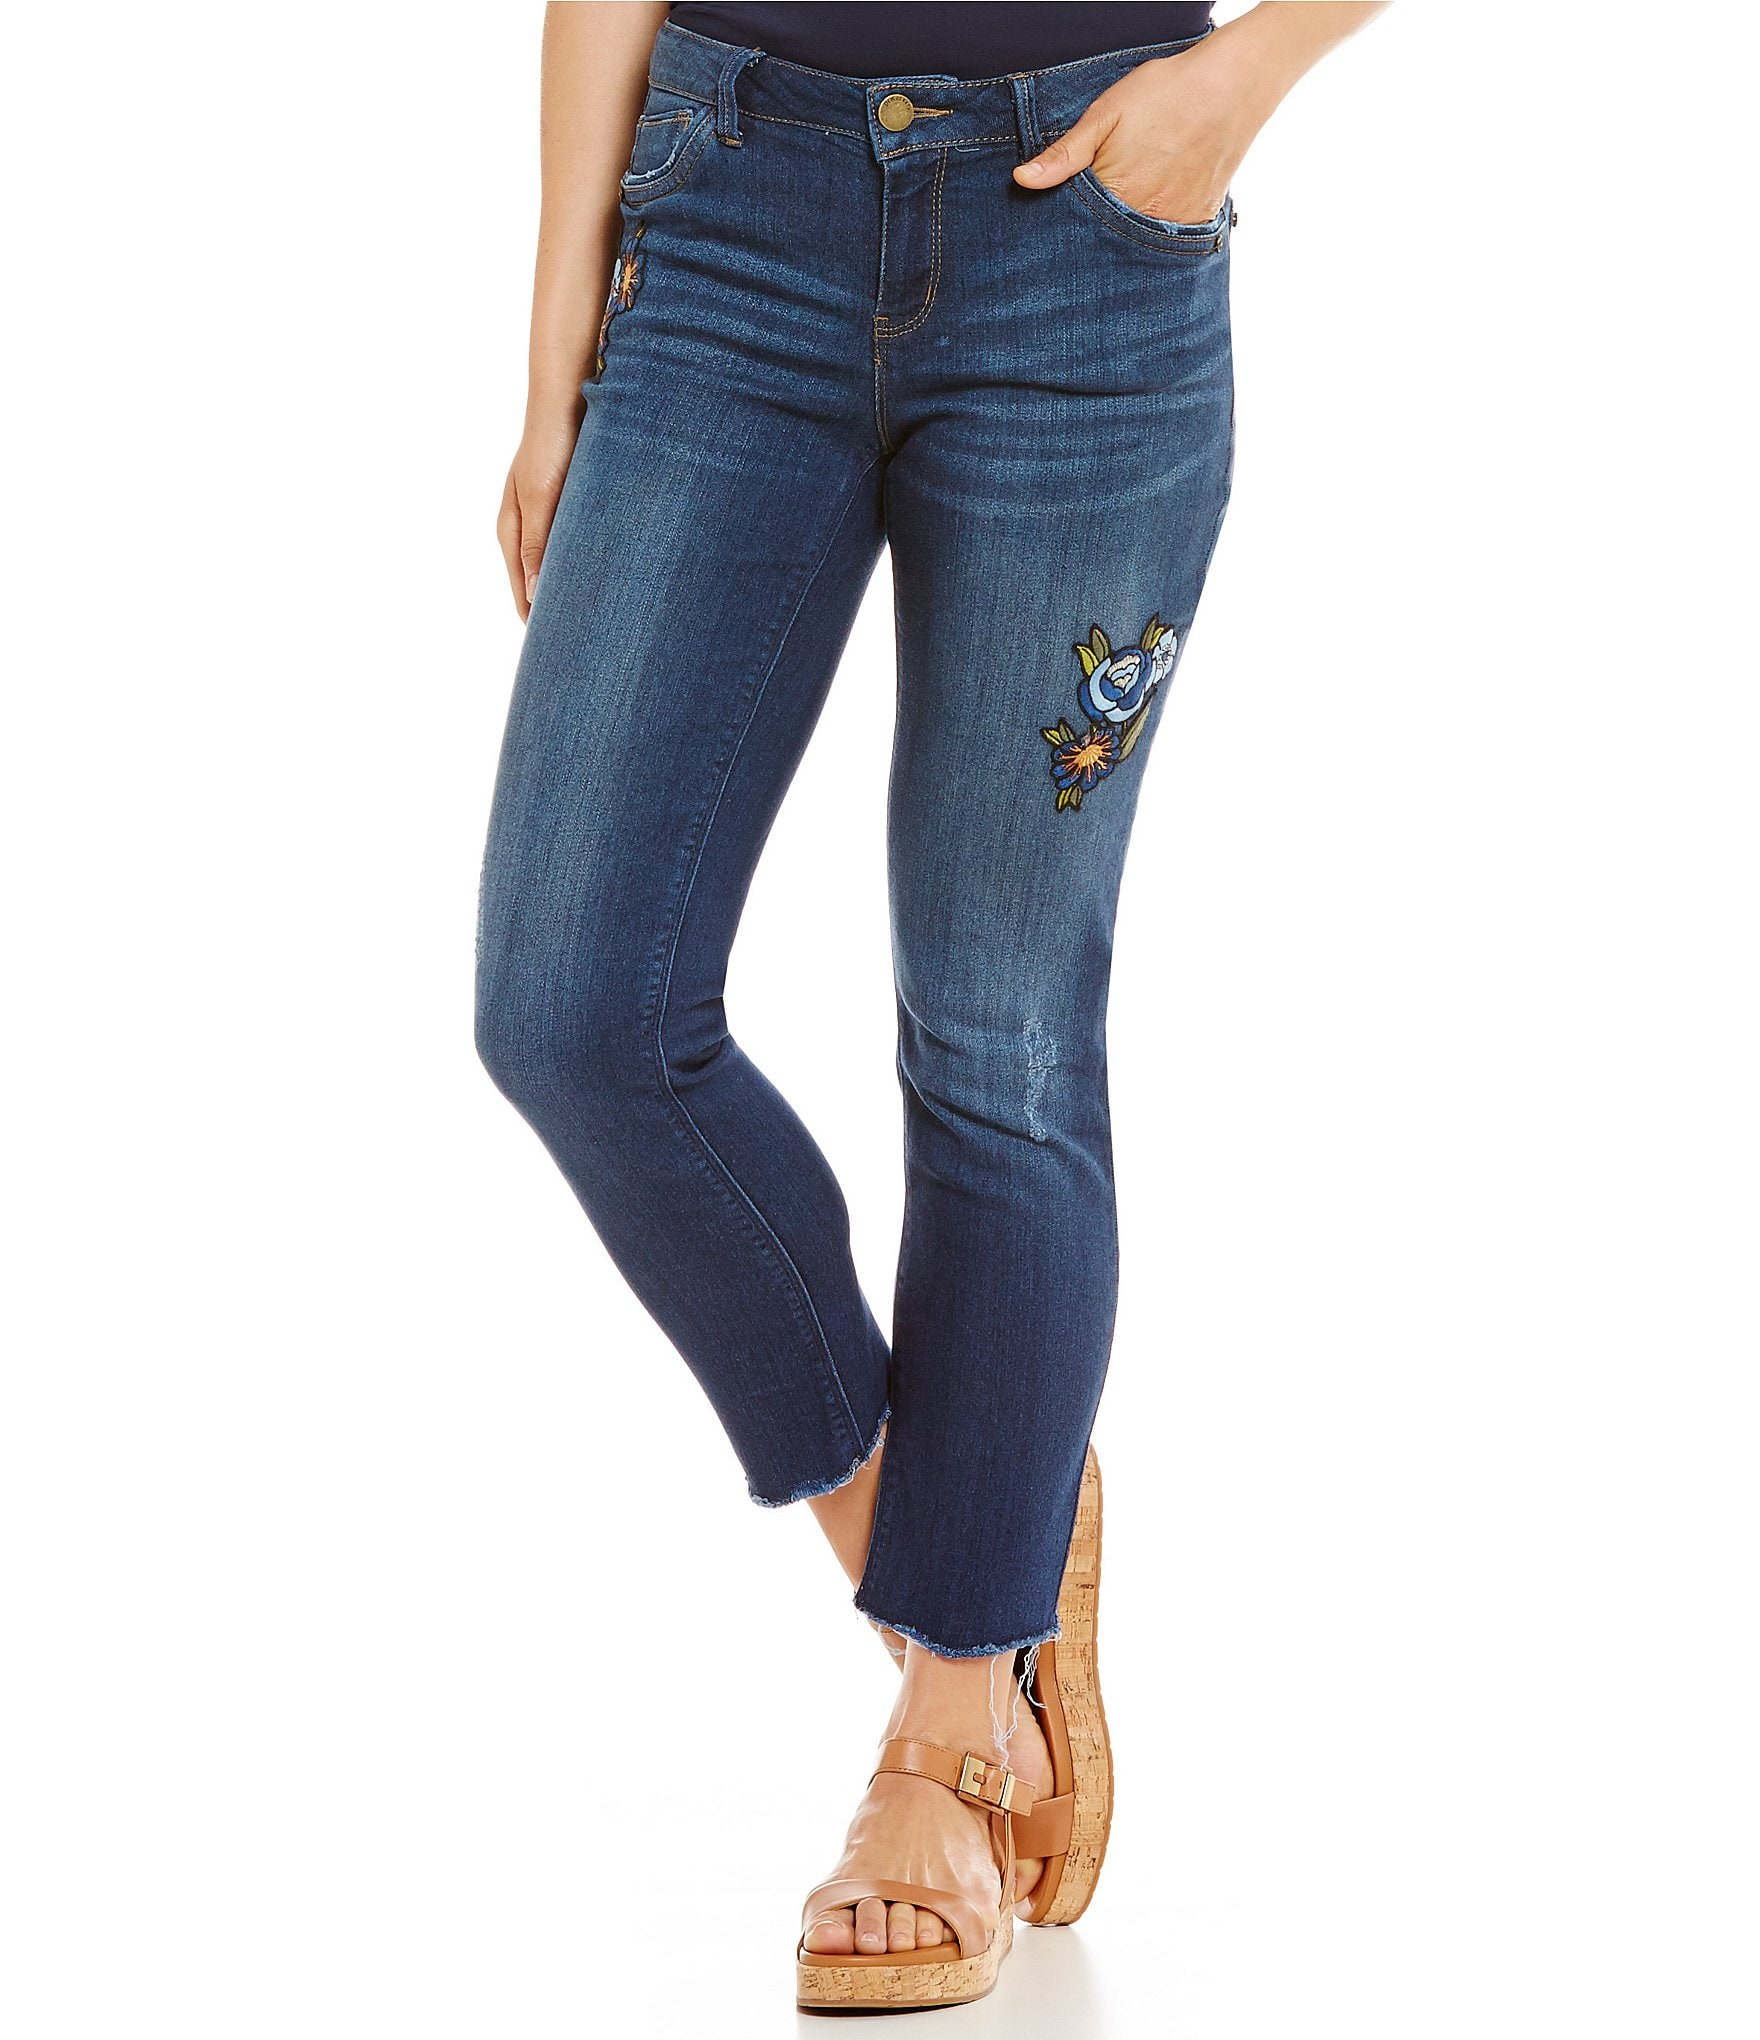 Democracy floral embroidered straight leg ankle jeans